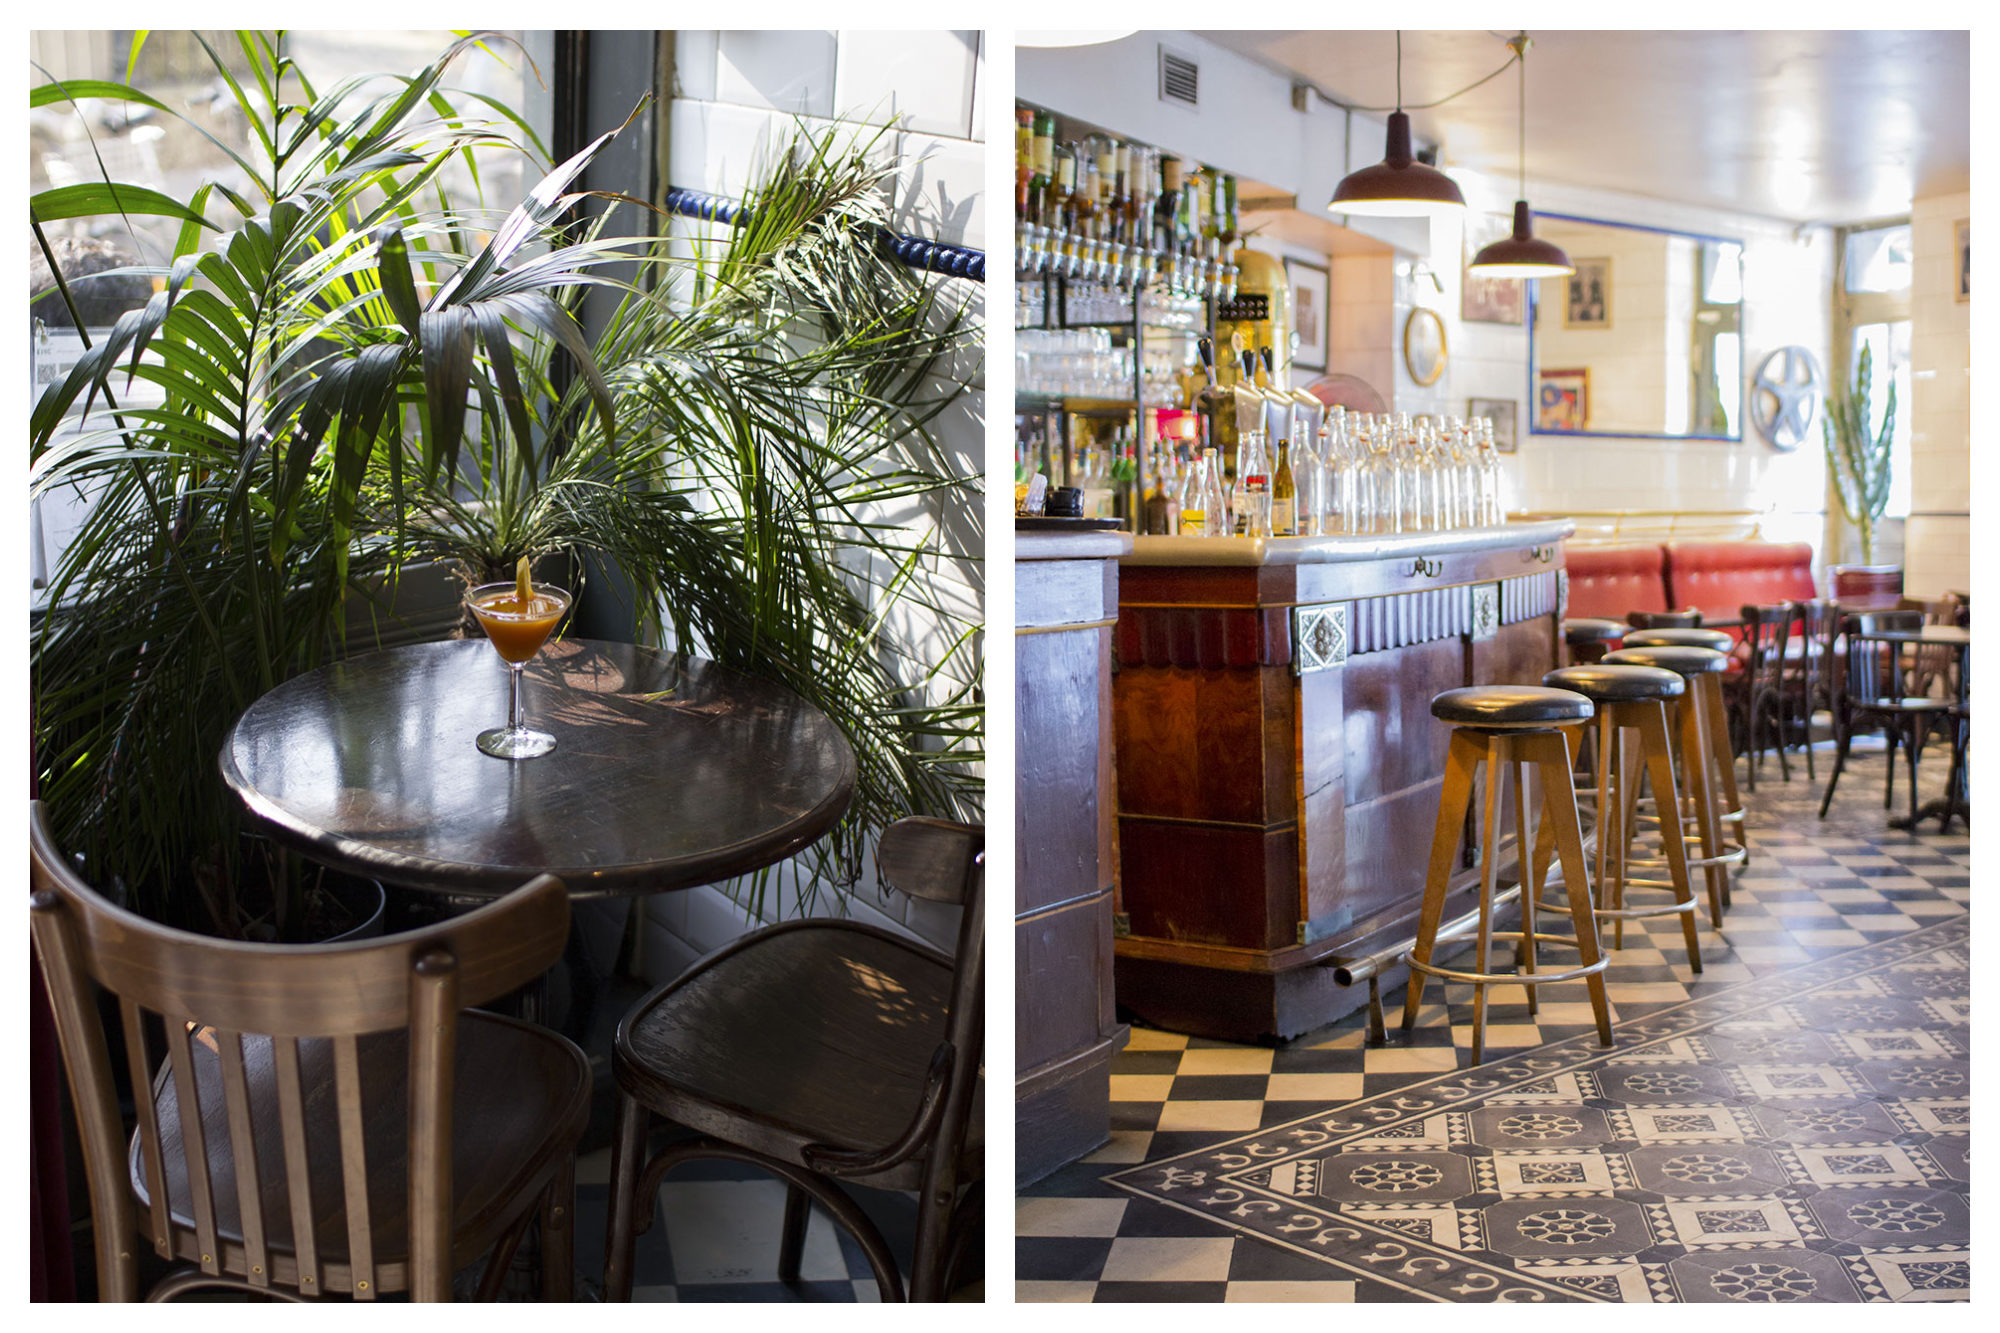 Inside iconic French restaurant Hotel du Nord which has wooden bistro tables and chairs and plant life (left) as well as bar stools lined up at the bar on the lower level of the space (right).